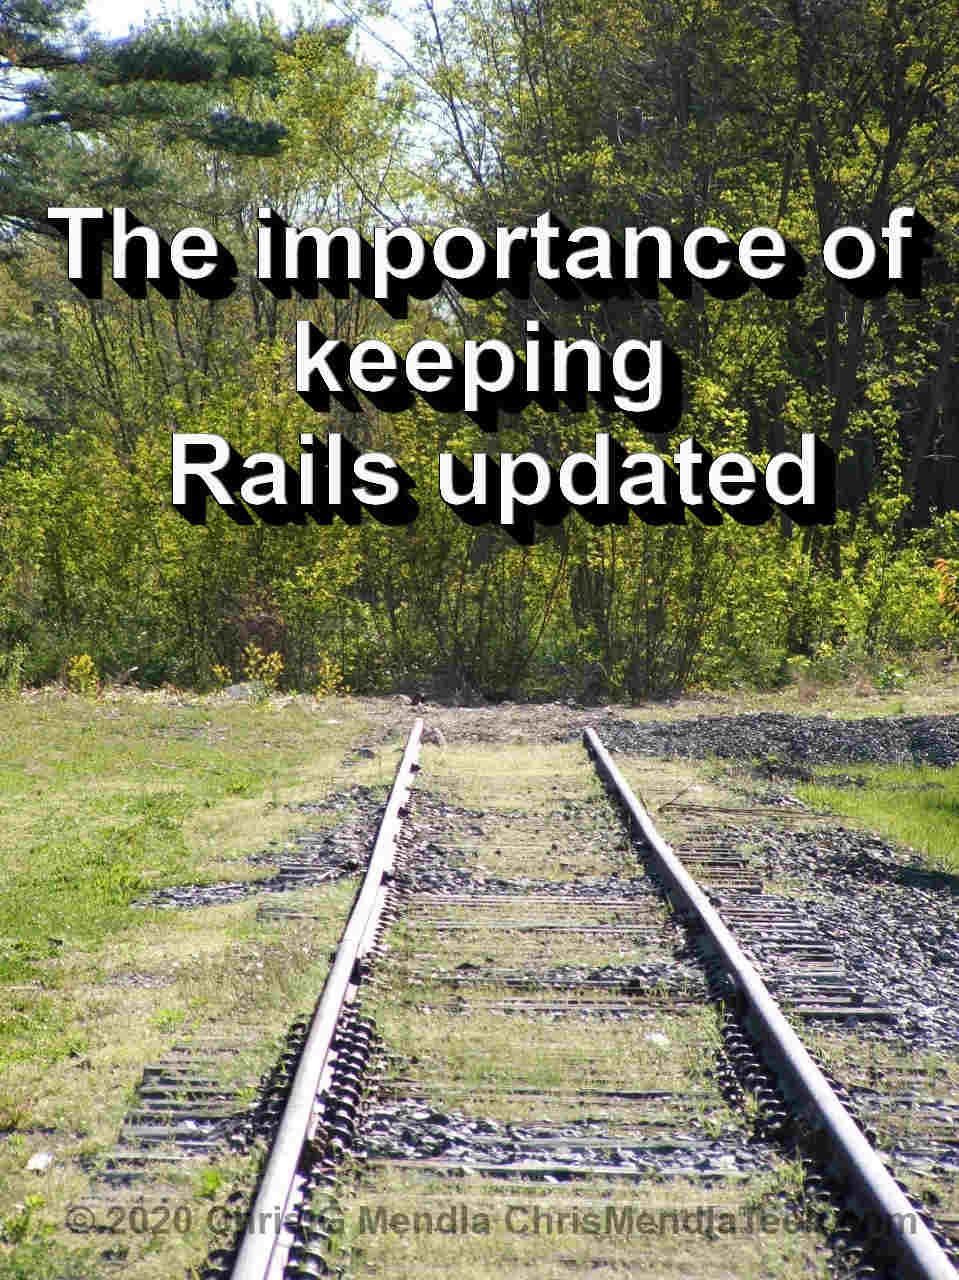 The importance of keeping Ruby on Rails updated